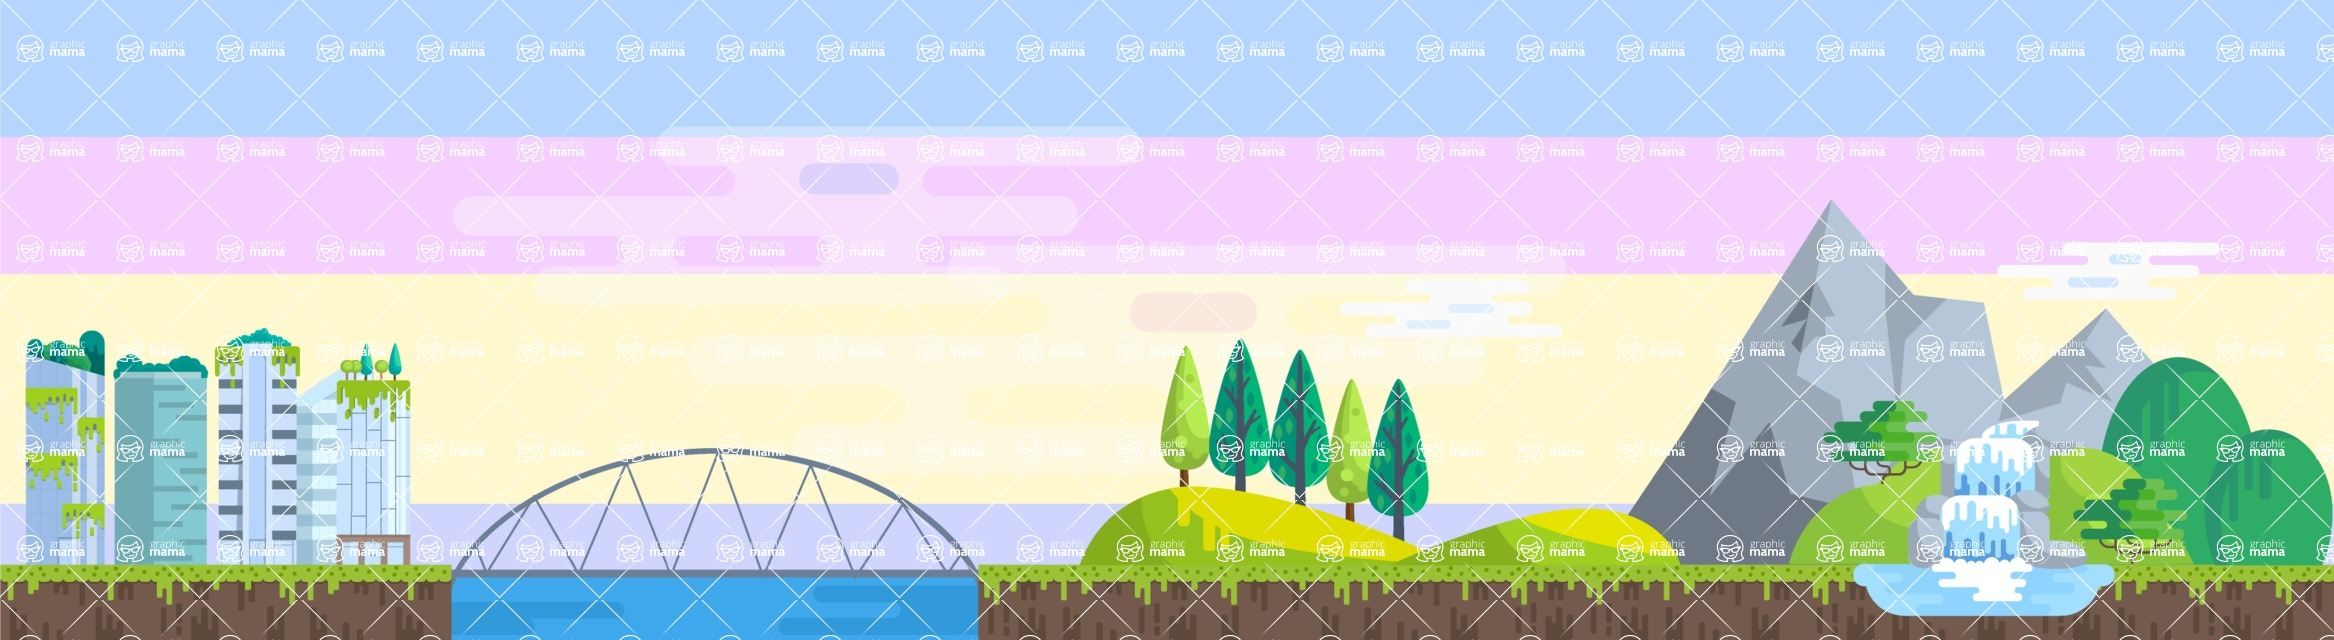 Background Vector Creation pack. A rich collection of flat vector elements for nature landscapes, city skylines, futuristic towns, fantastic scenes.  - Backgrounds 36